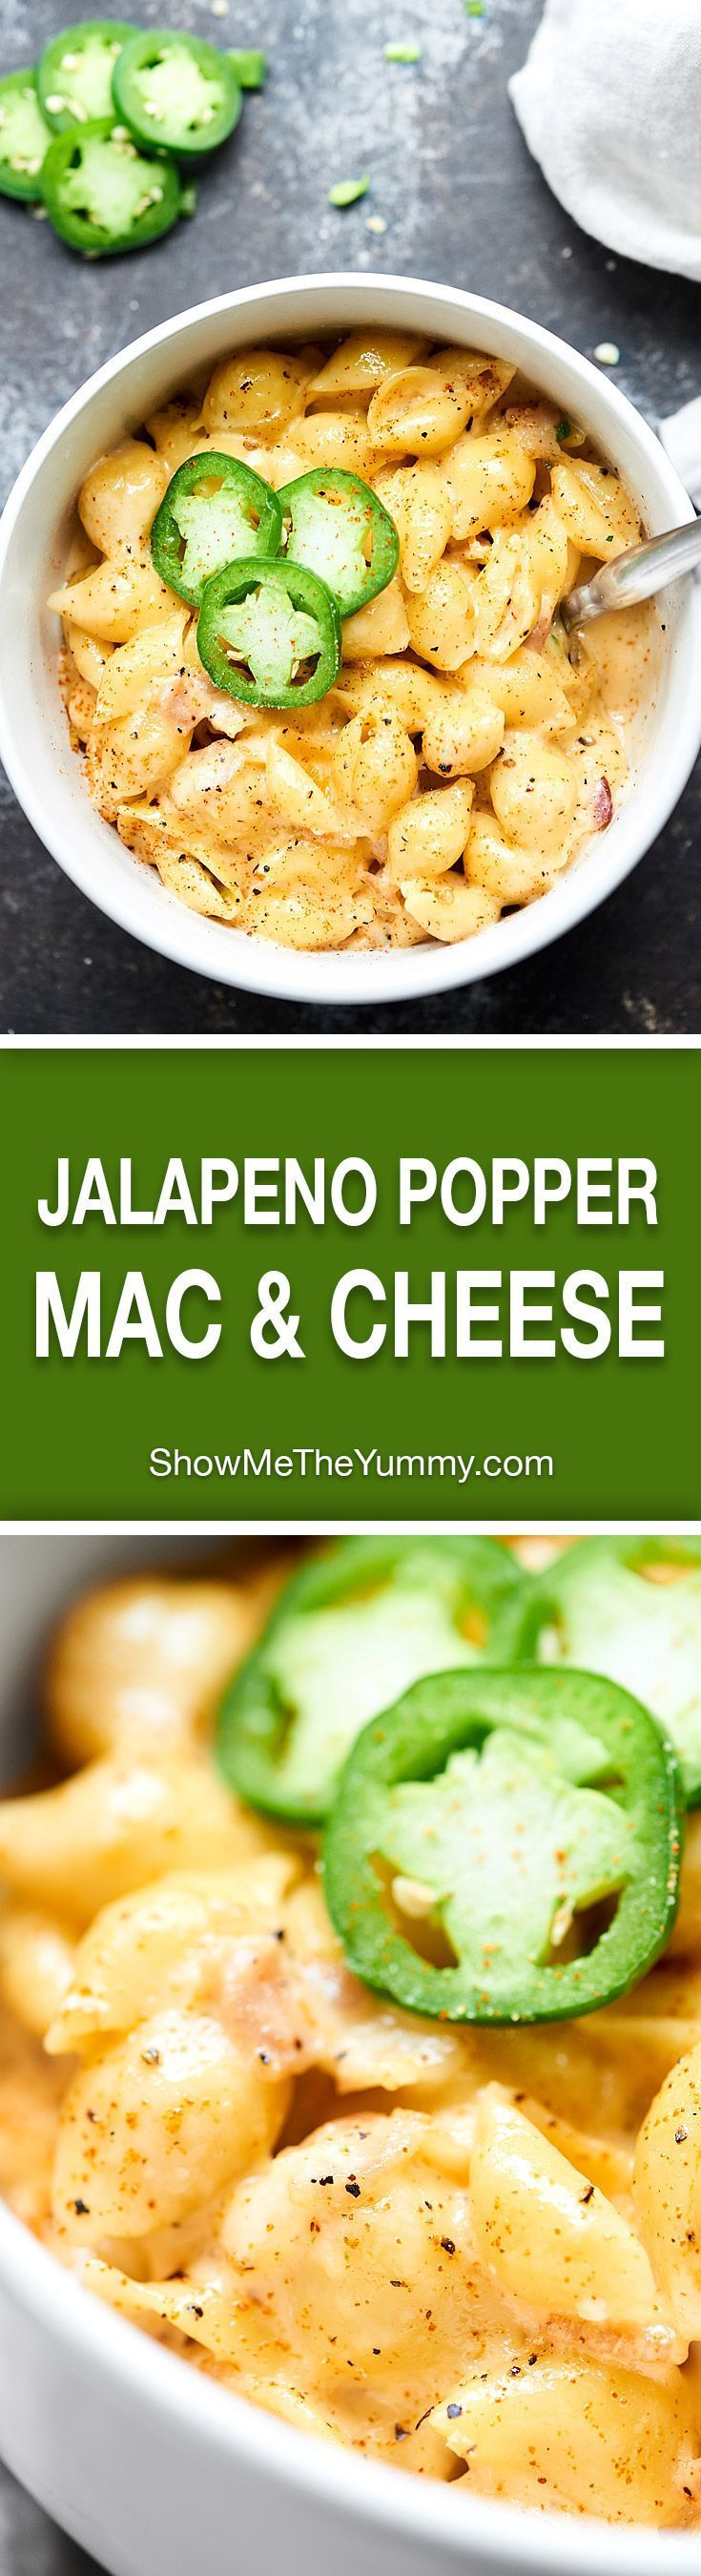 This One Pot Jalapeno Popper Mac and Cheese is creamy, a bit tangy from the mayo & cream cheese, is full of bacon, & is perfectly spicy from the jalapenos! showmetheyummy.com #jalapenopopper #macandcheese